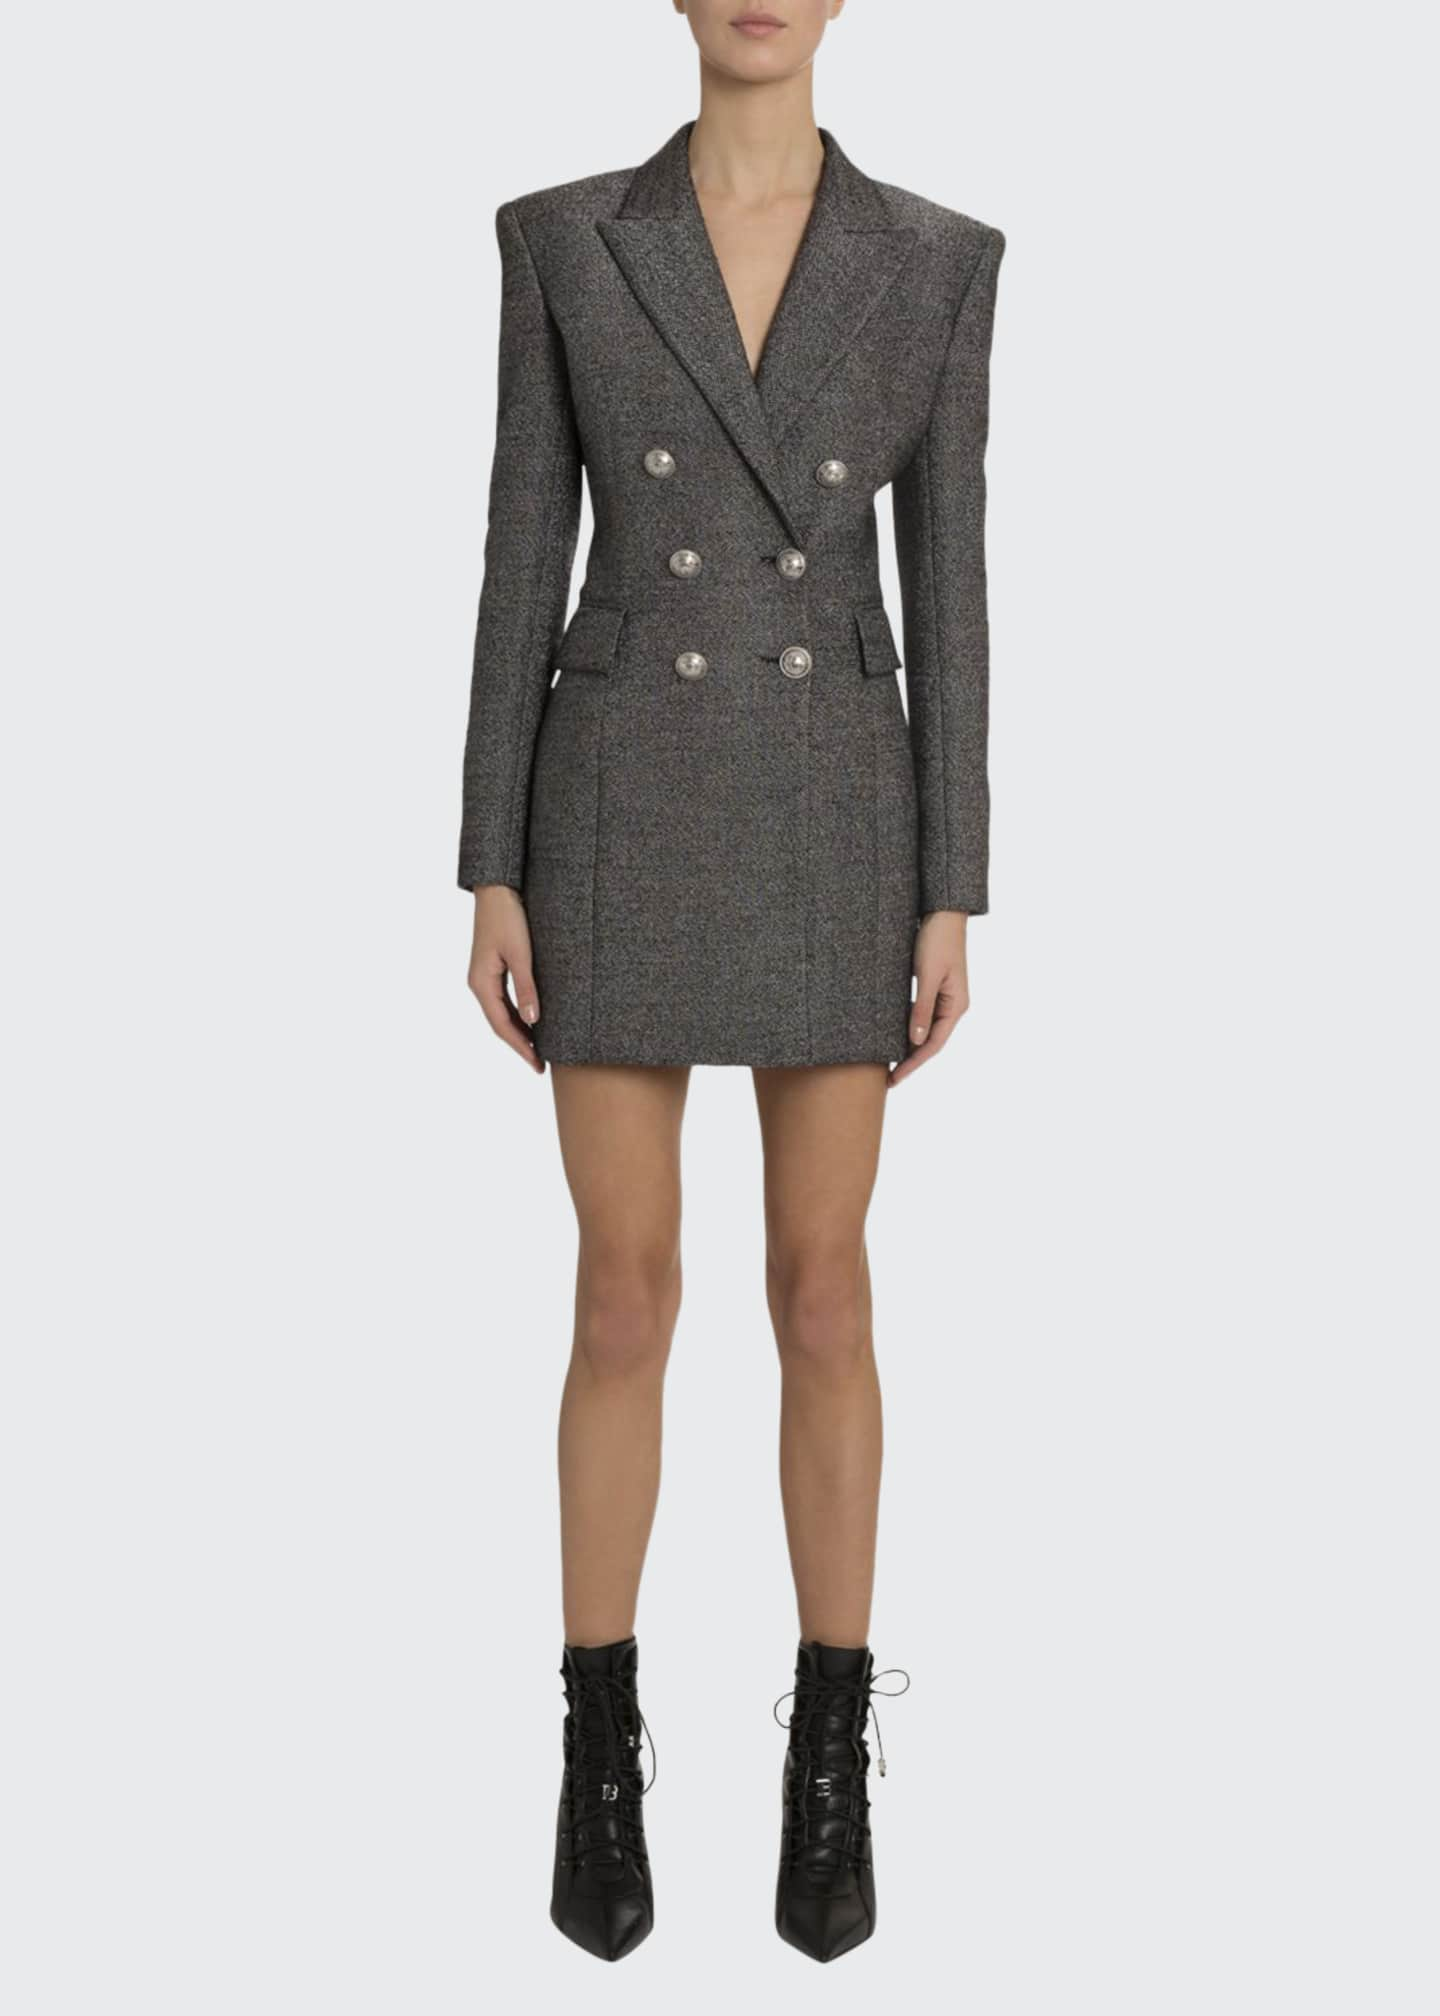 Balmain Double-Breasted Wool Blazer Dress